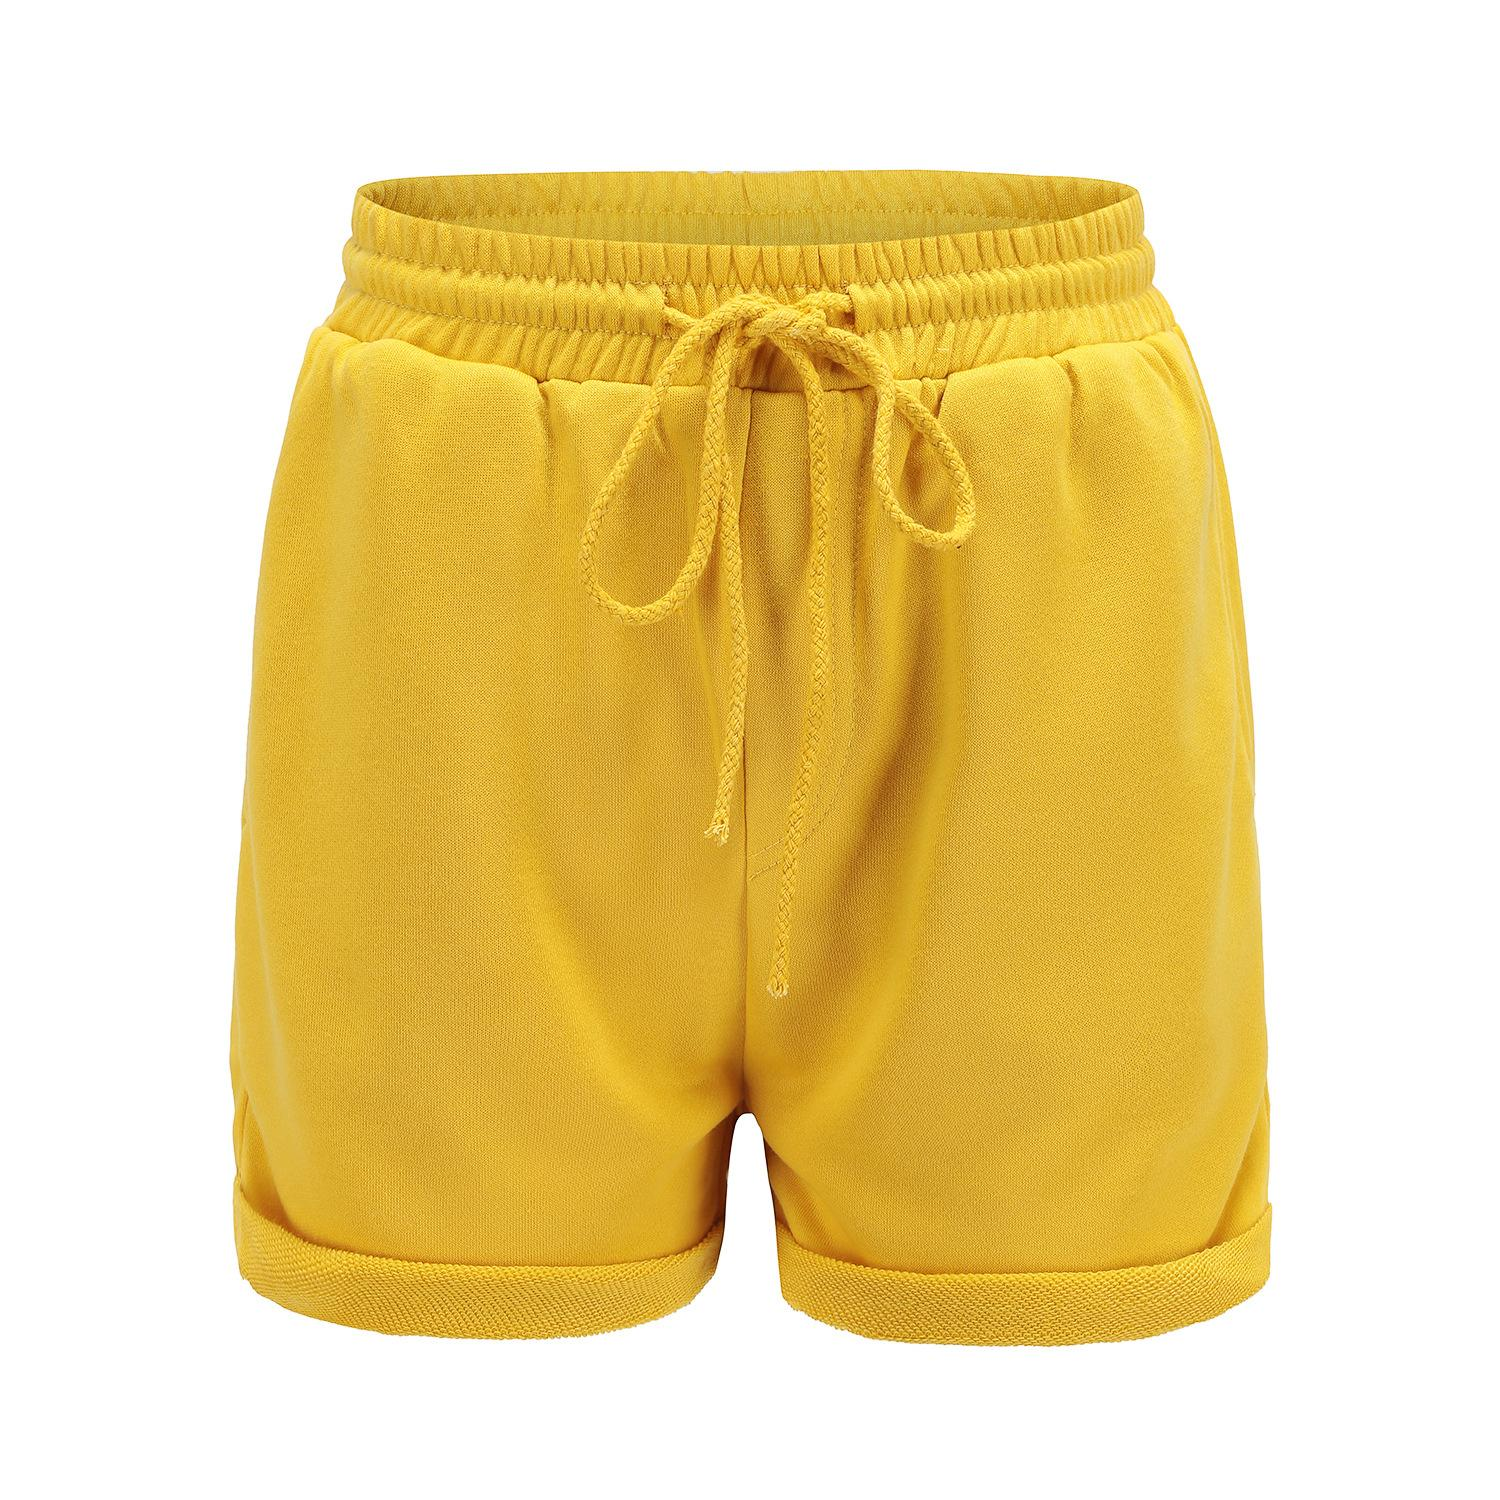 Sale European And American Fashion Women S Clothes Summer Clothes Holiday Shorts And Gym Shorts Oem Original